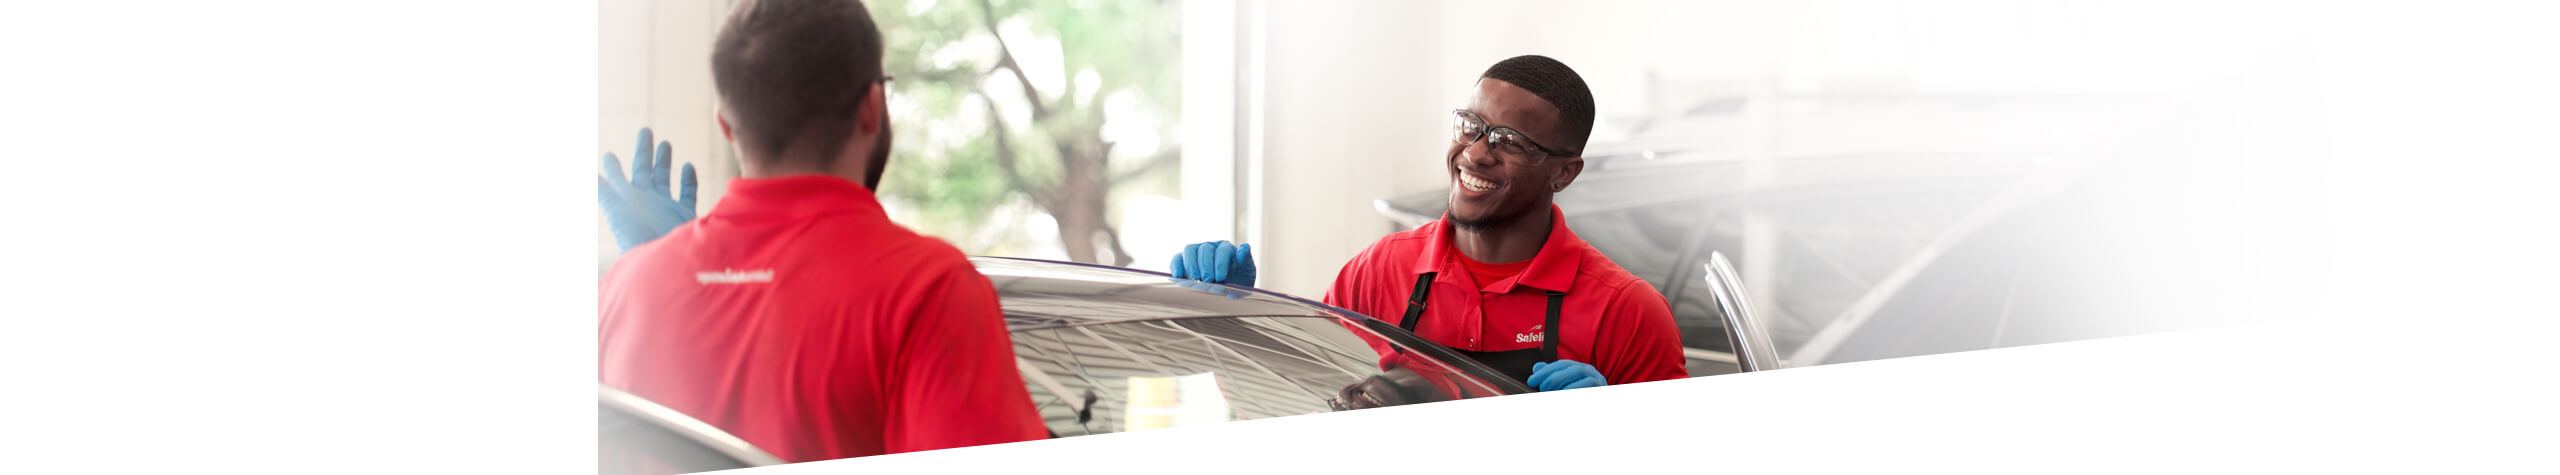 Safelite AutoGlass technician